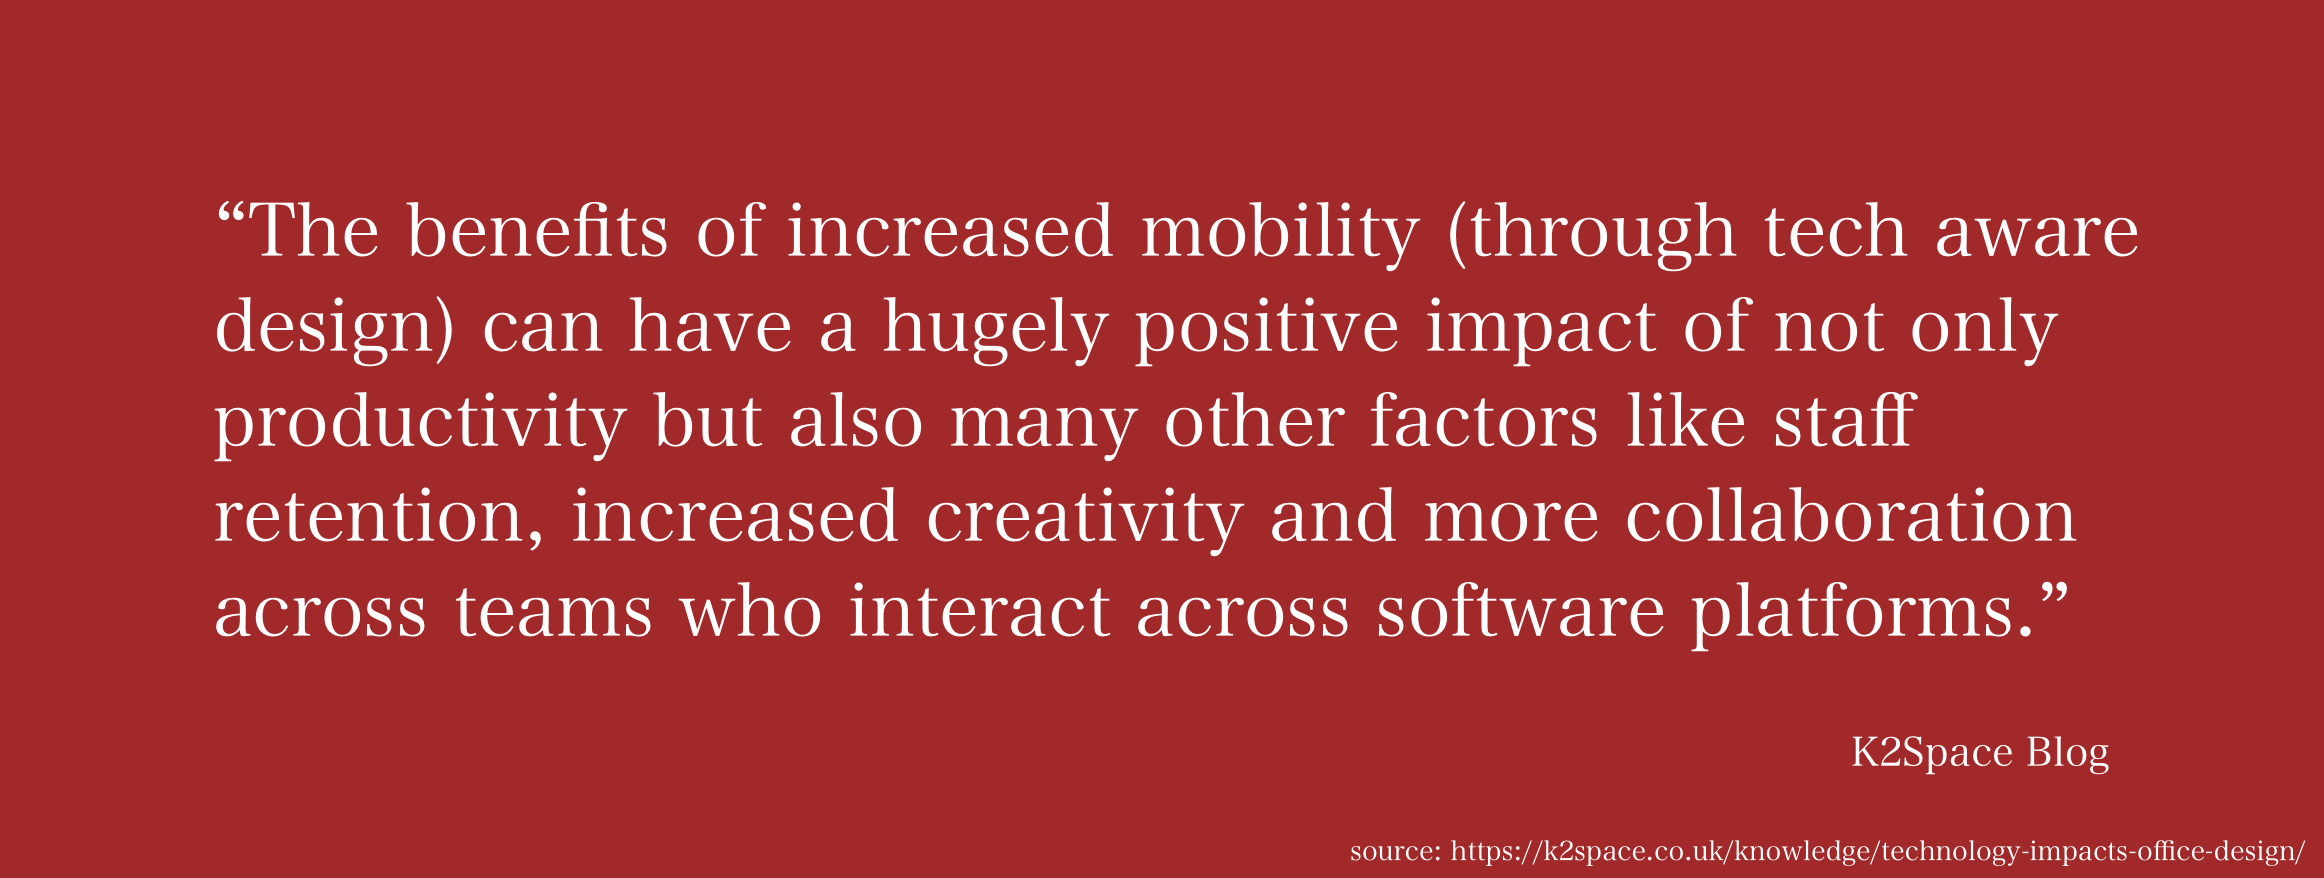 Benefits of Increased Mobility